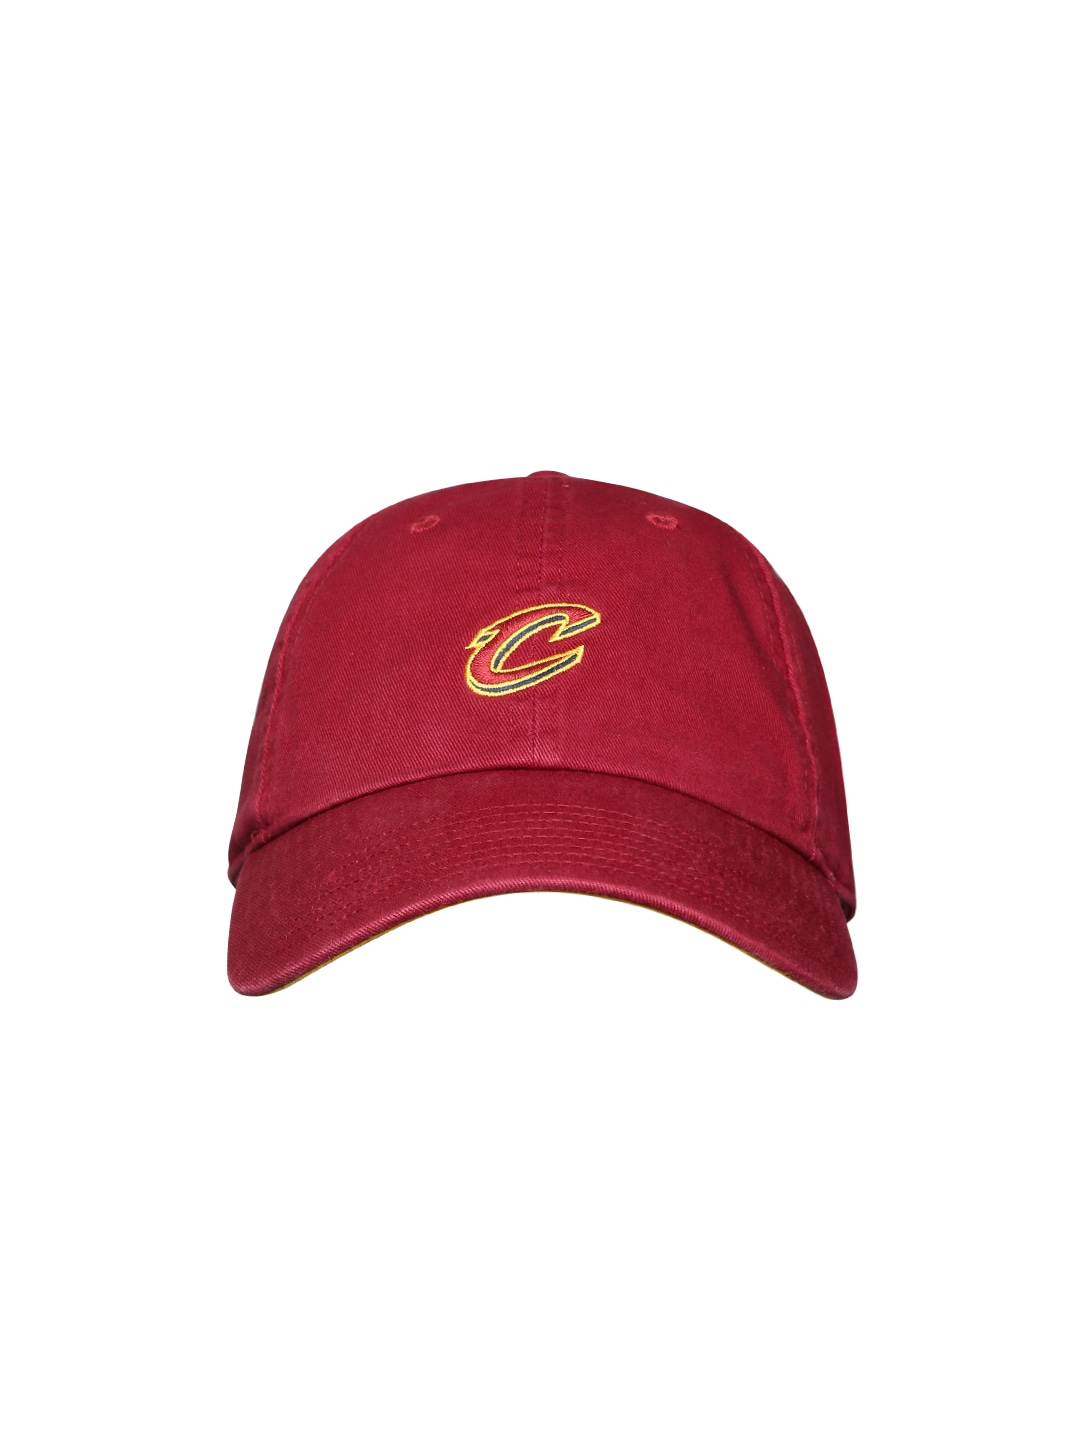 3a4908c3368 Nike Cap - Buy Nike Caps for Men   Women Online in India